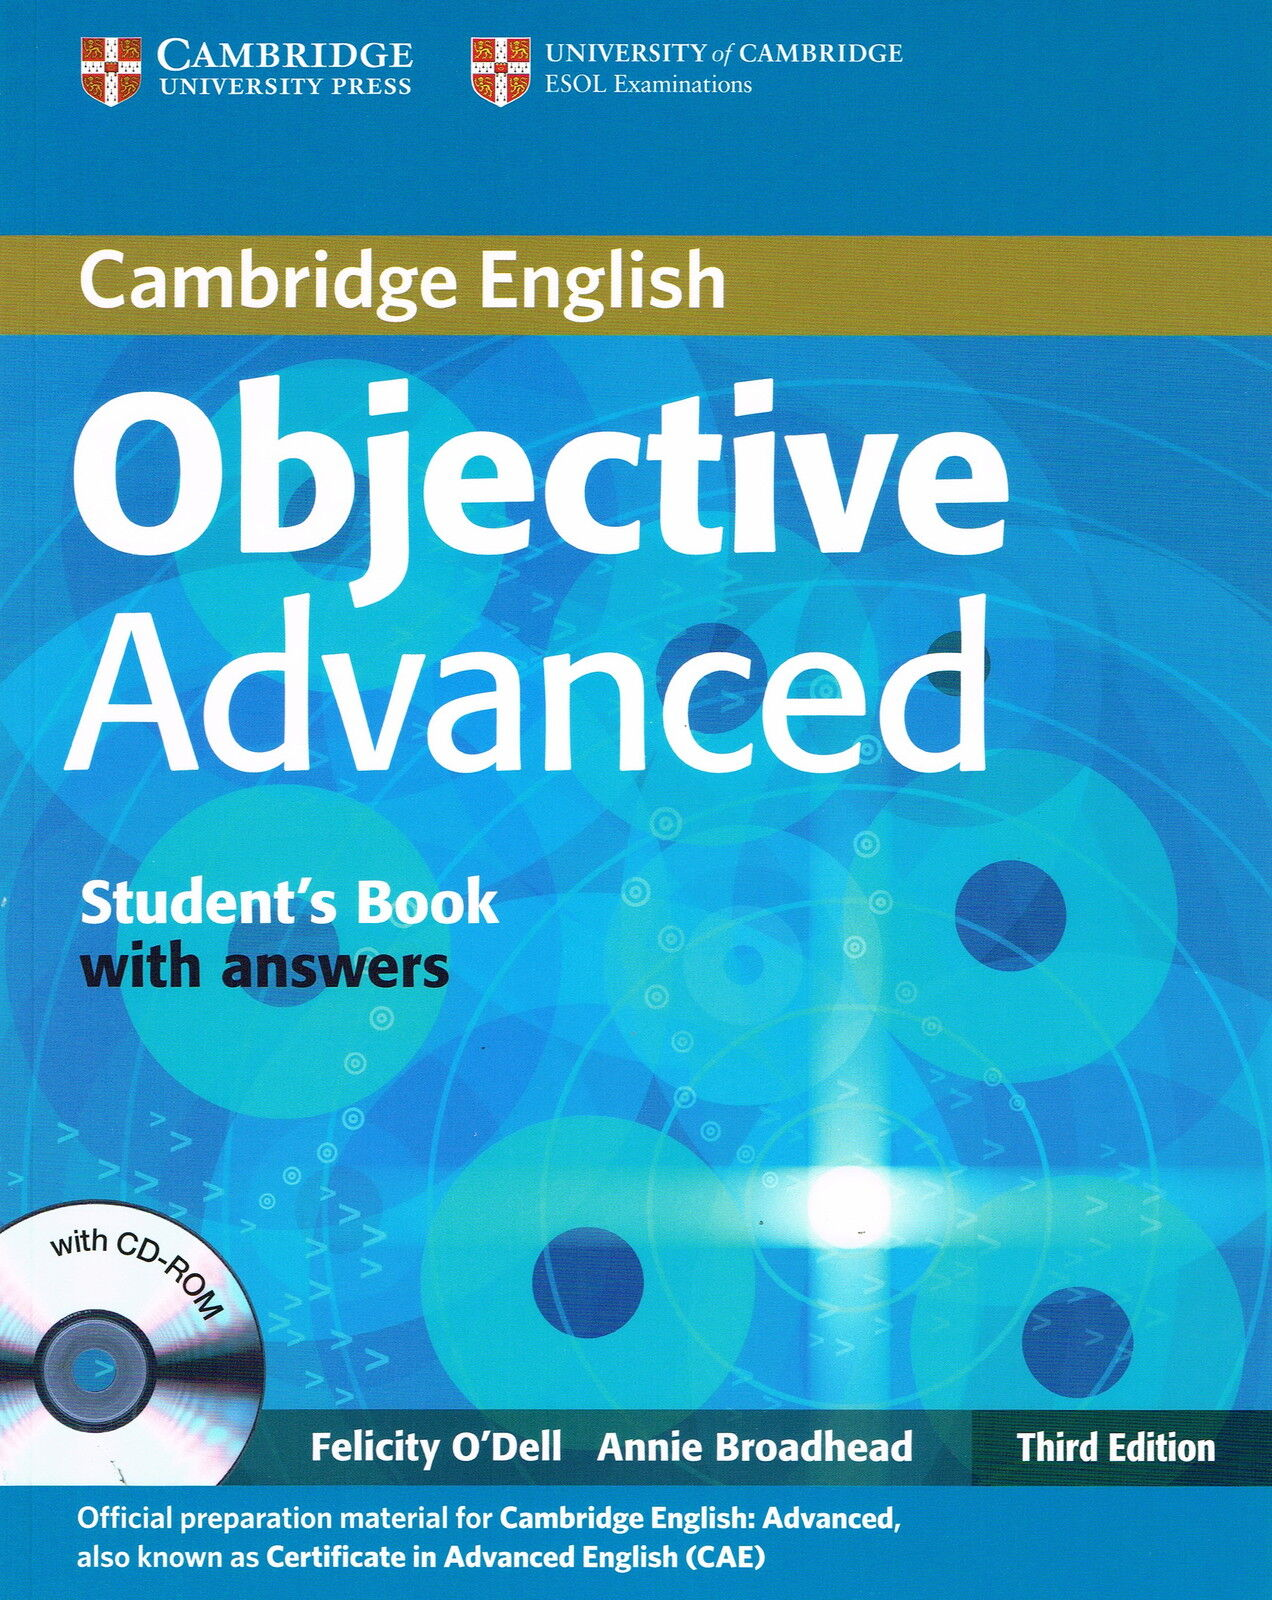 Objective Advanced Student S Book With Answers With Cd Rom By Felicity O Dell Annie Broadhead Mixed Media Product 2012 For Sale Online Ebay